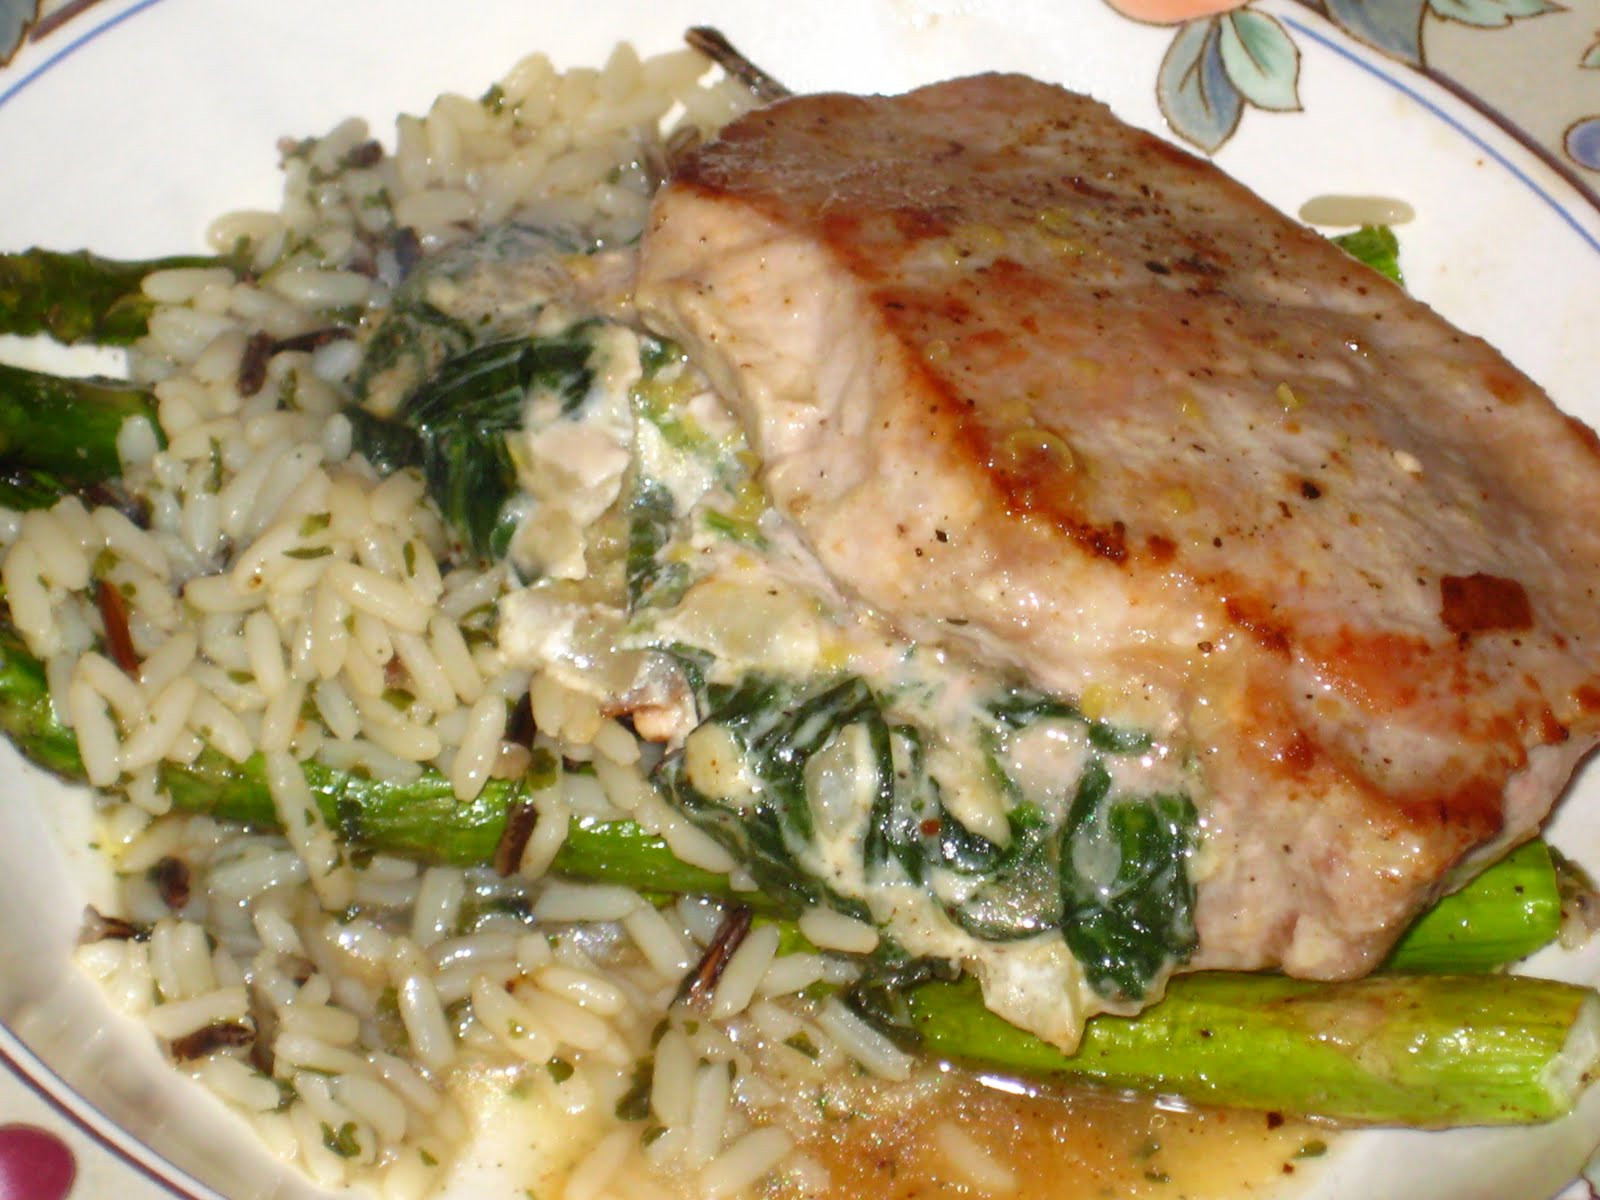 Spinach Stuffed Pork Chops  Spinach and Goat Cheese Stuffed Pork Chops